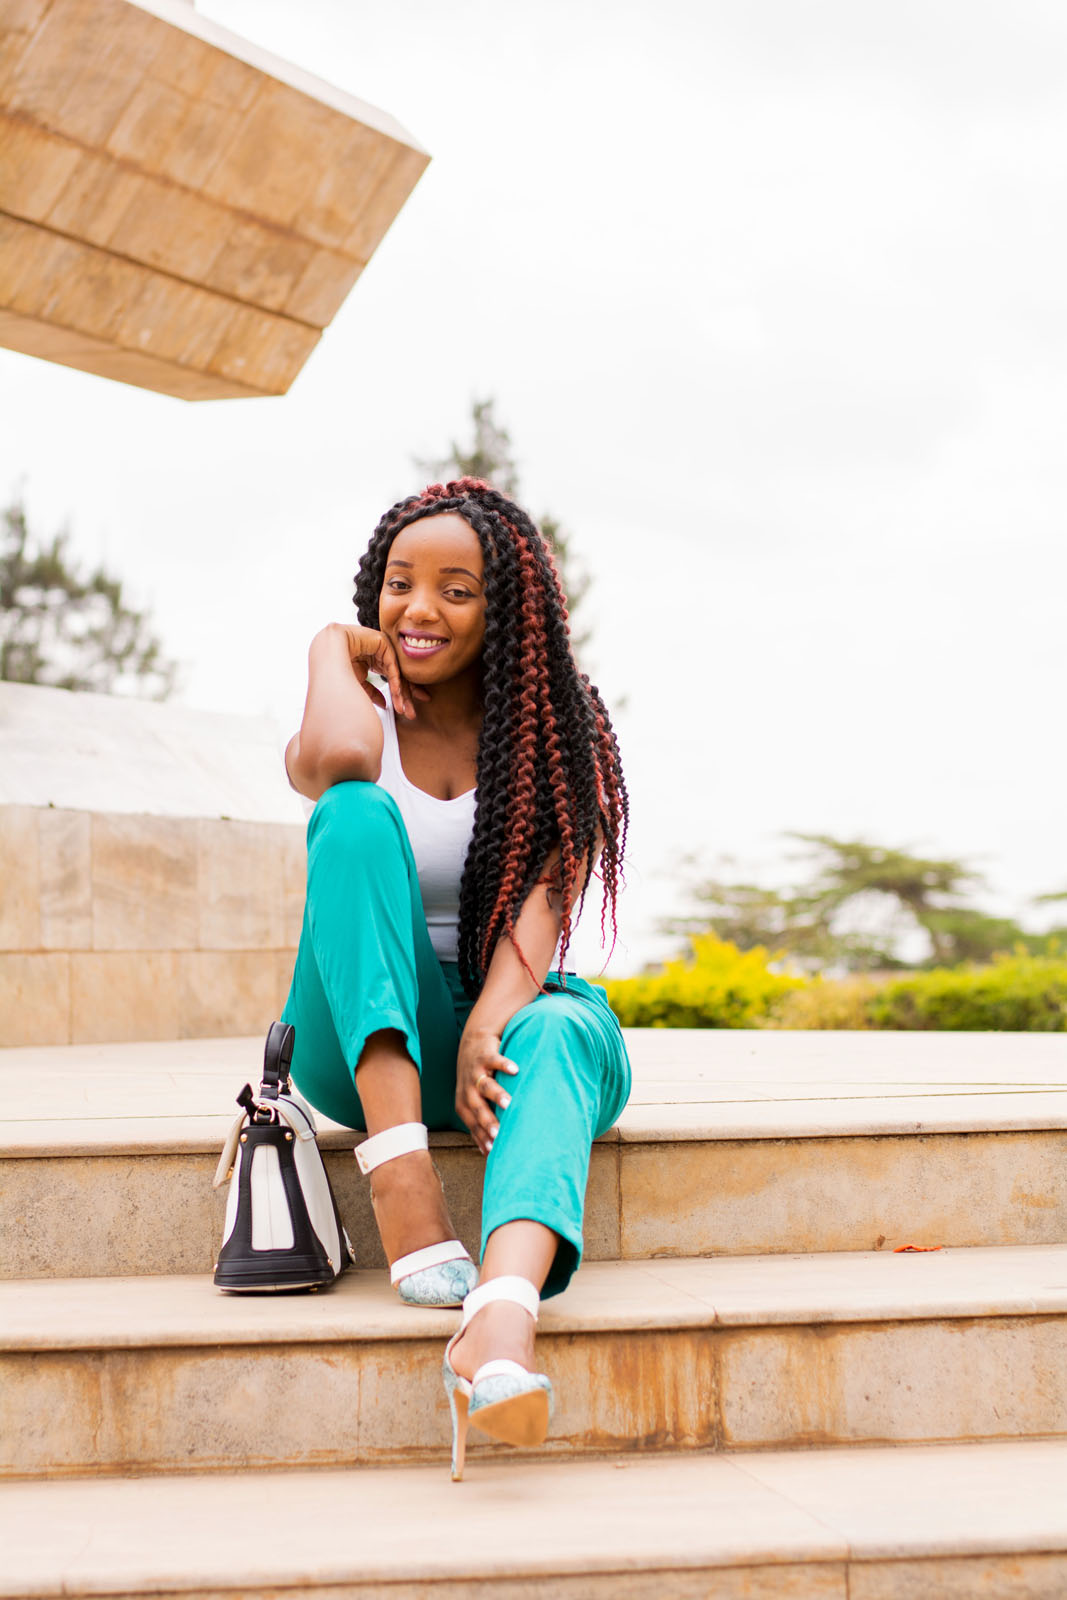 wanjiru-kariuki-colouredpants17